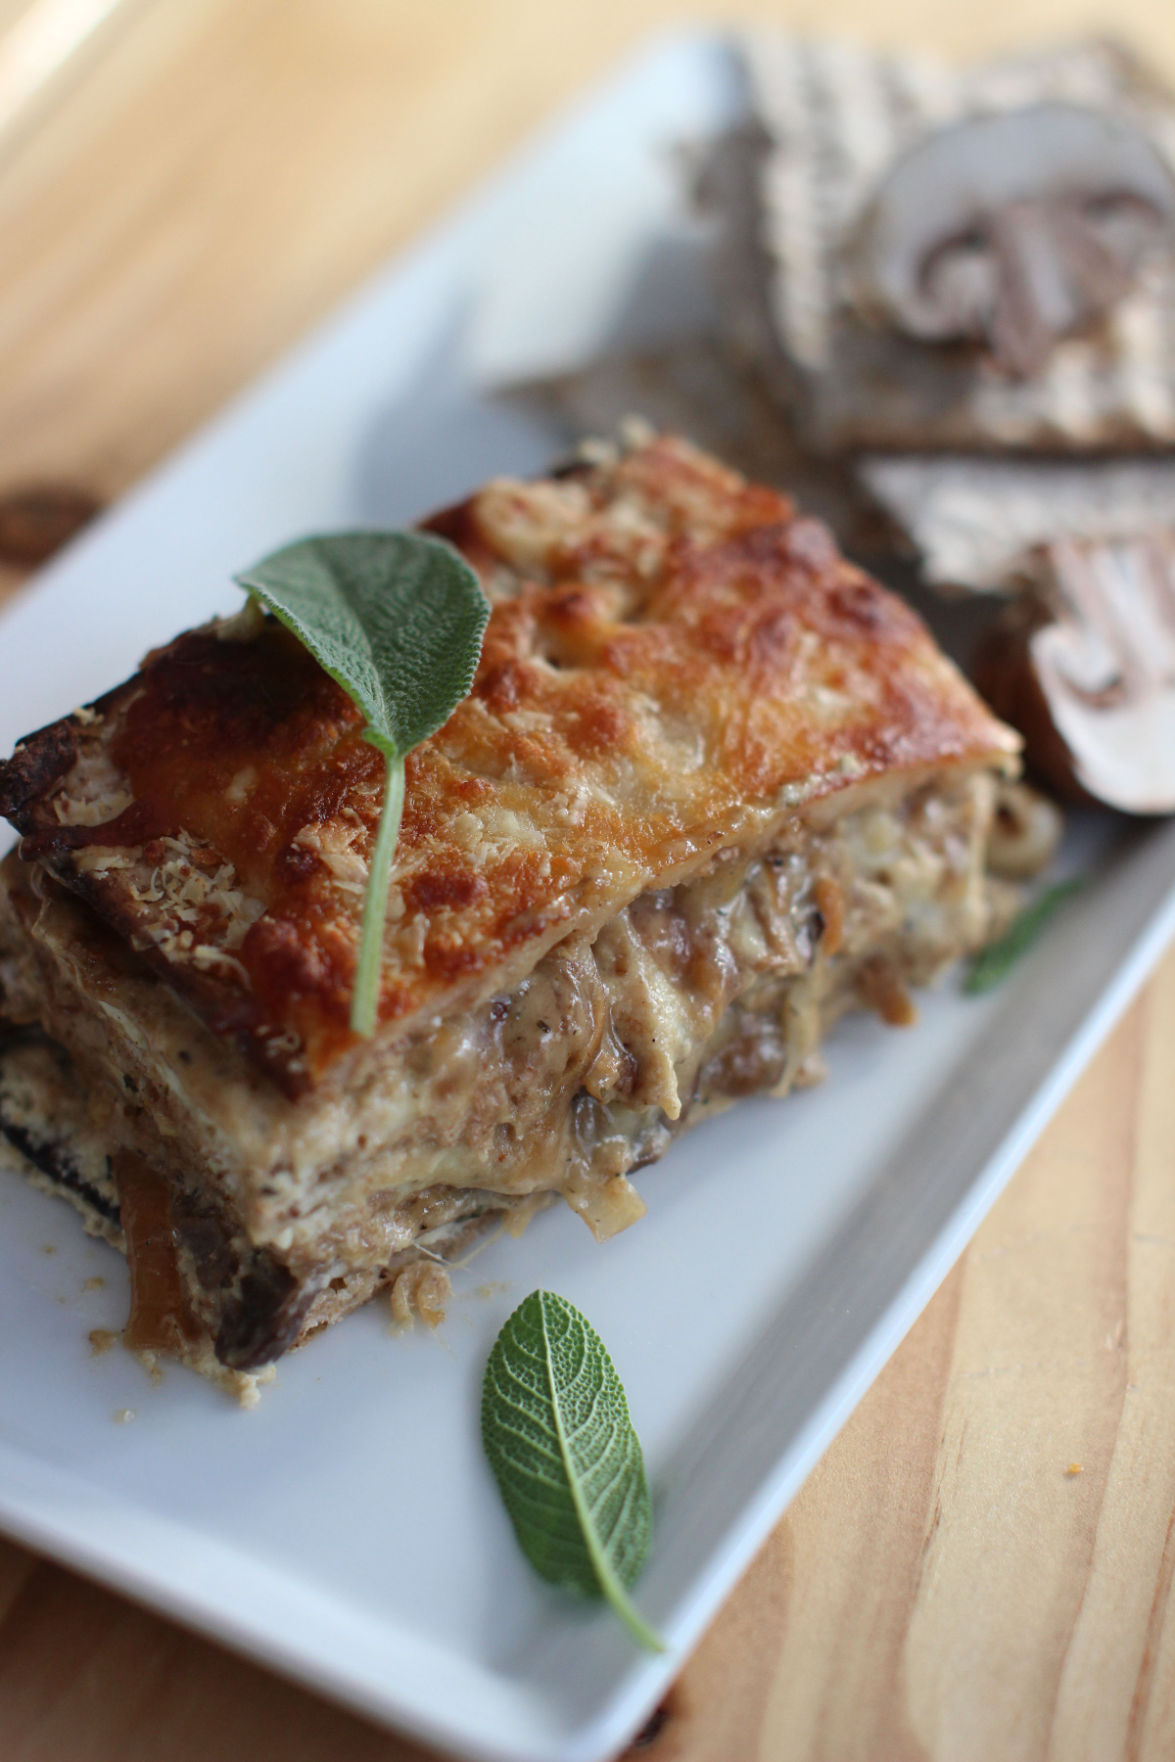 Matzo as pizza? No thanks. But as lasagna is another story